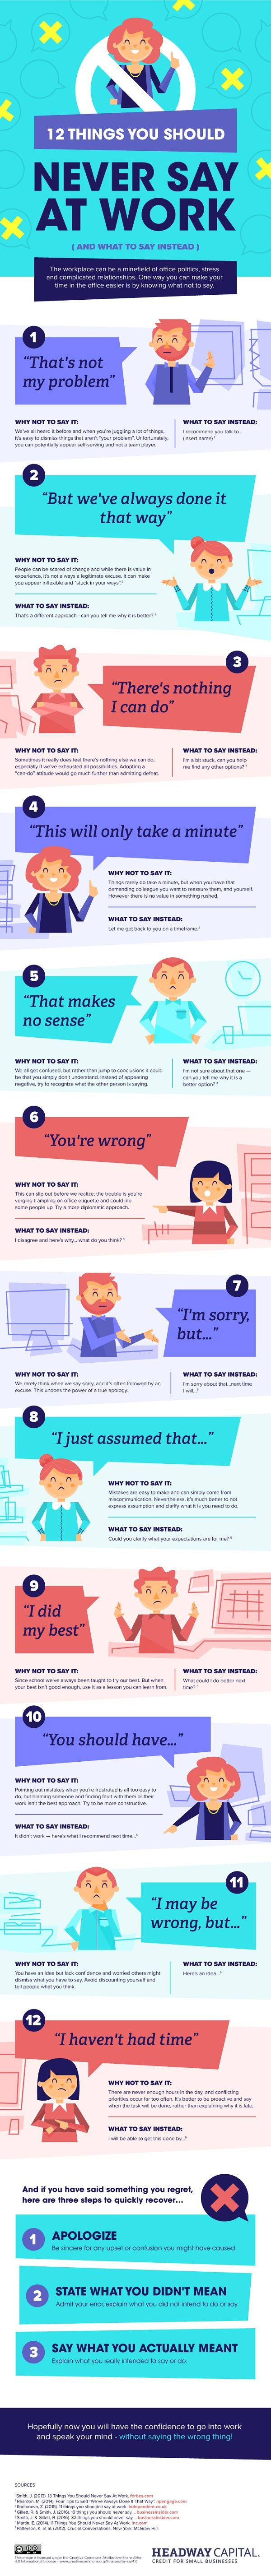 Infographic: 12 Things You Should Never Say At Work (And What To Say Instead)